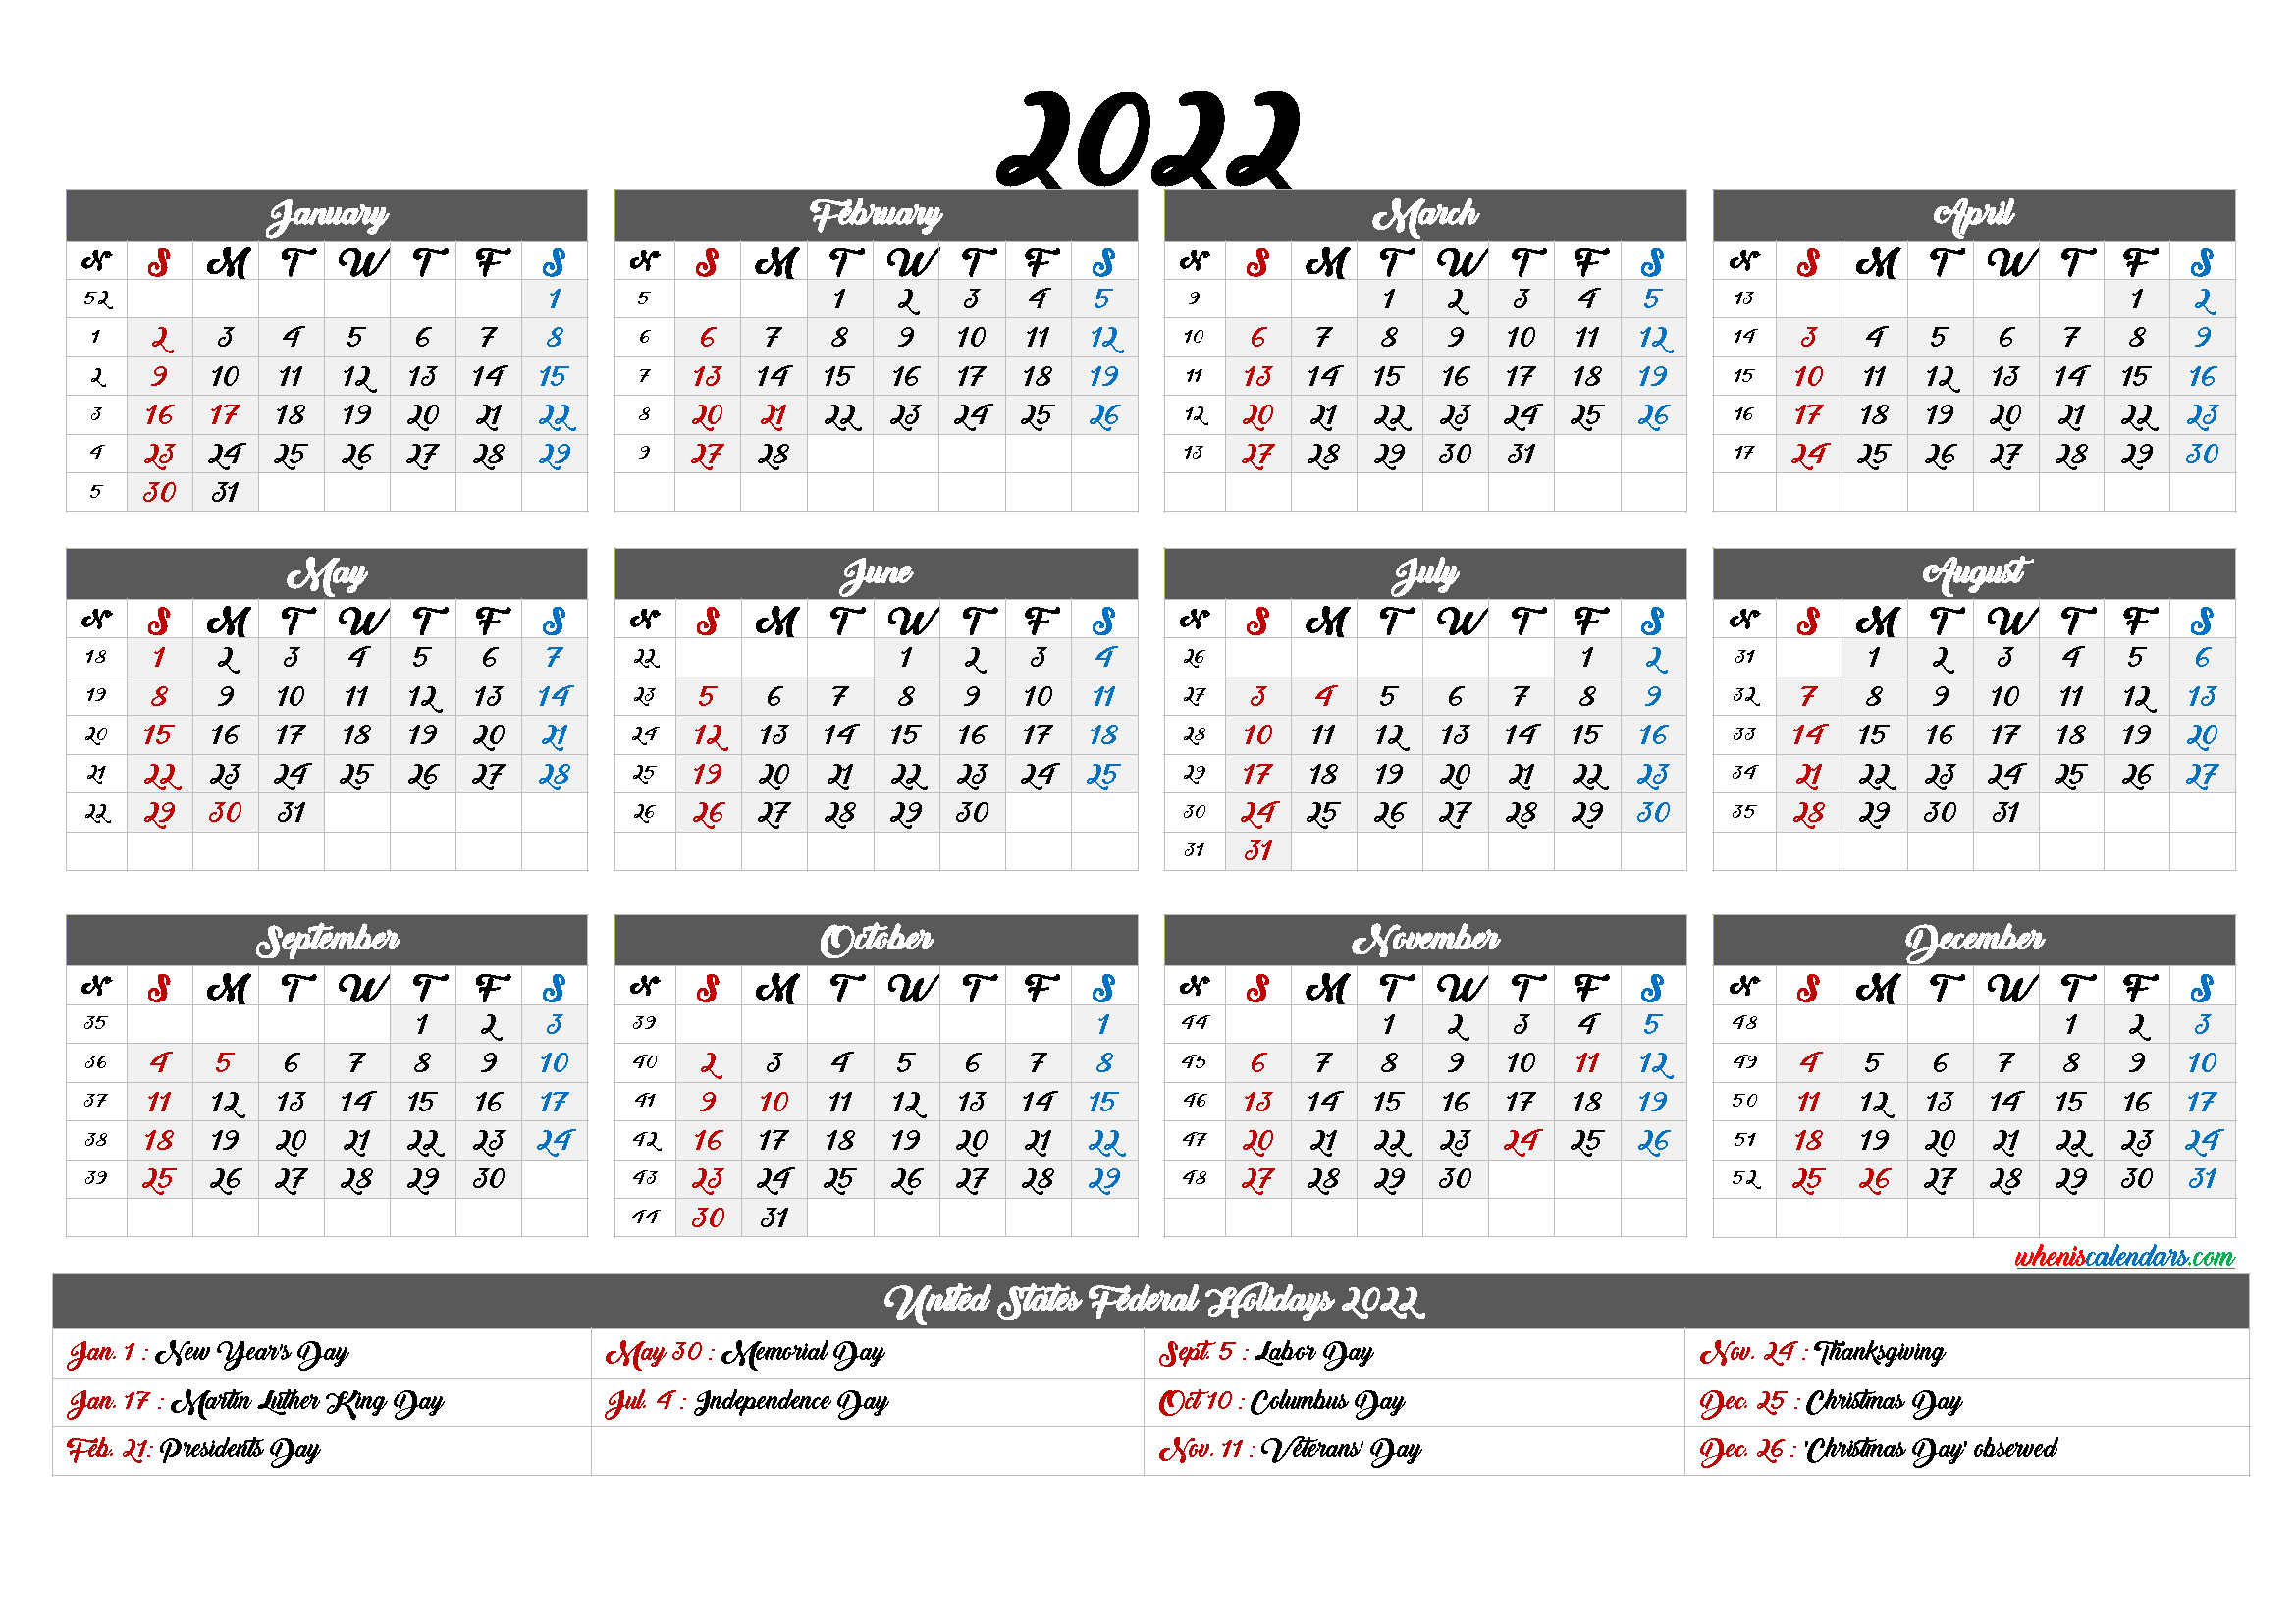 Printable Calendar 2022 With Holidays - 6 Templates inside Daily Planner 2022 Template